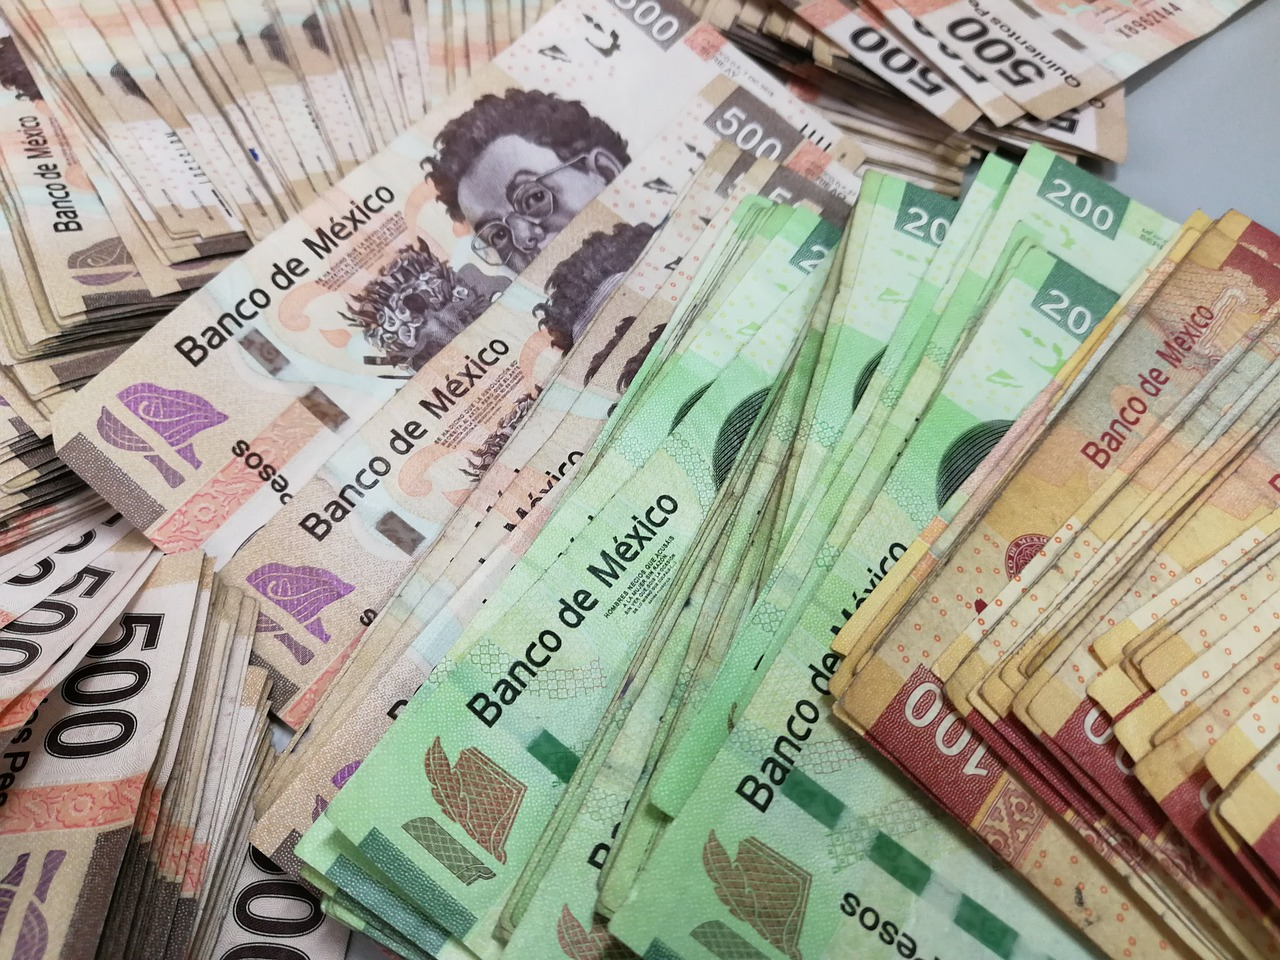 Money Cash Wealth Tickets Weights Bank Mexico